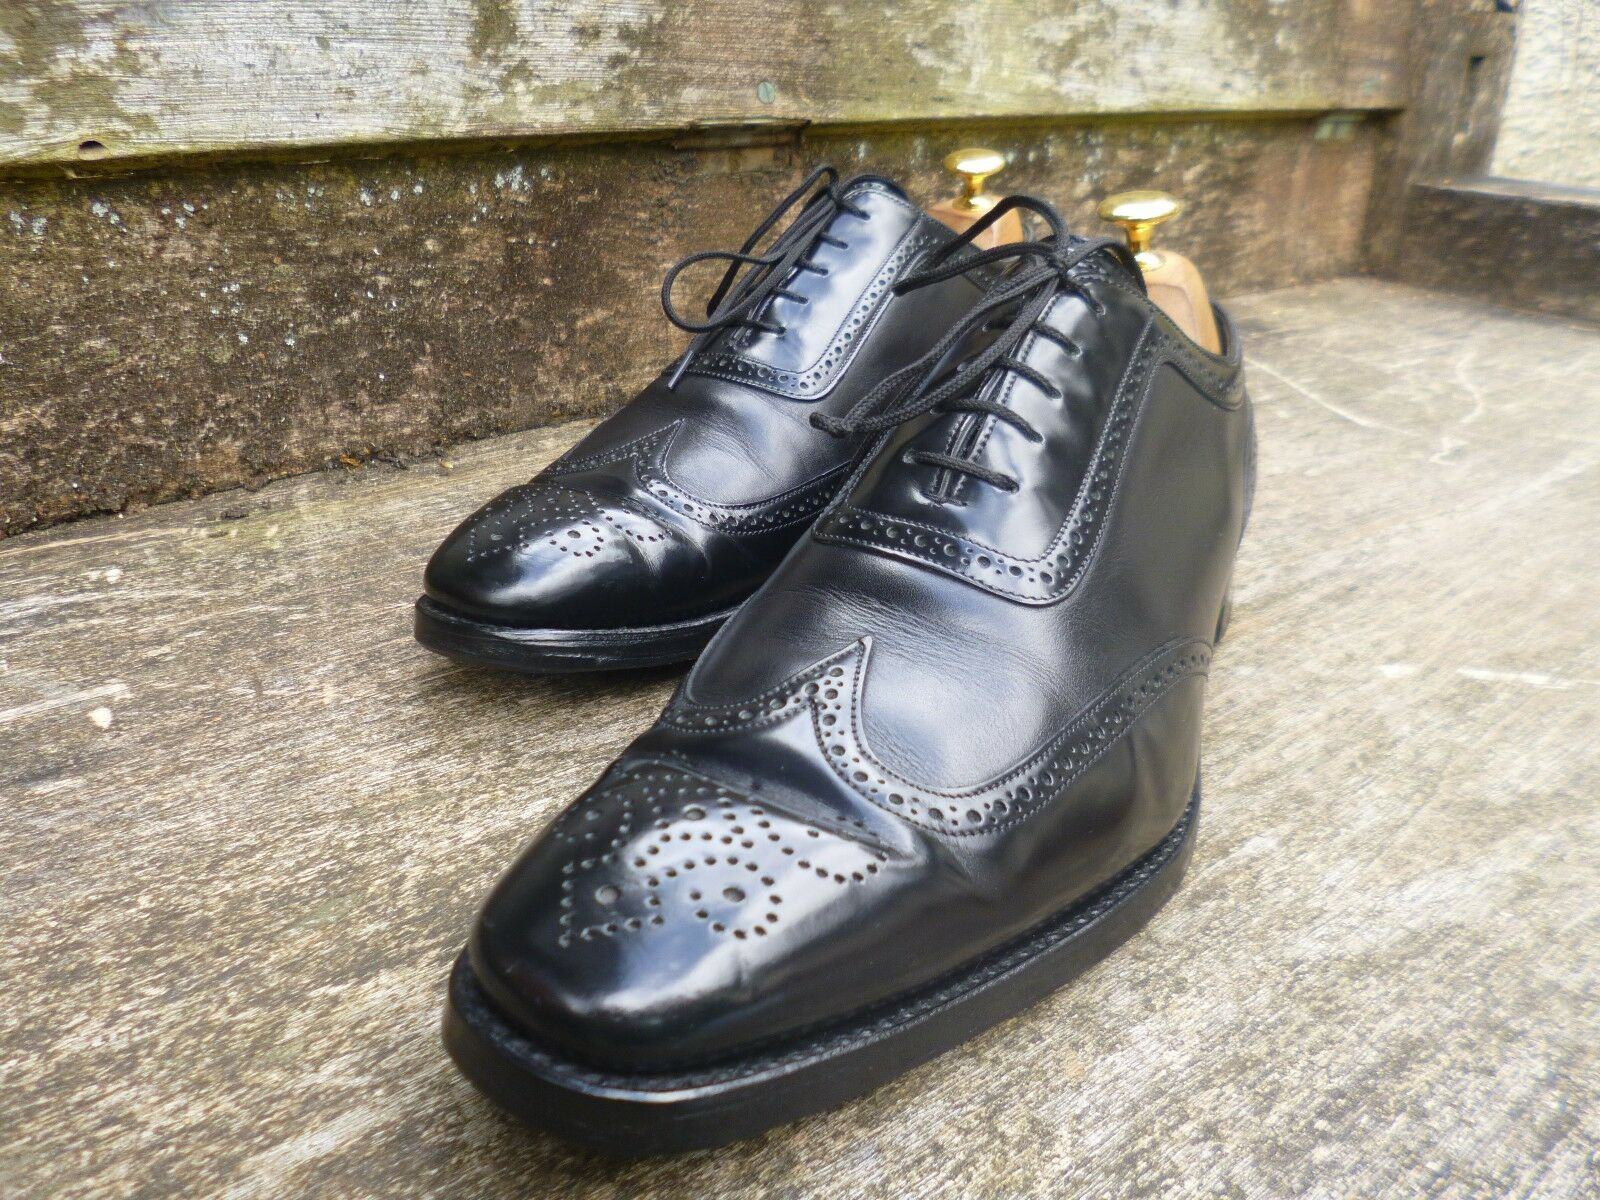 CHEANEY / CHURCH BROGUES - BLACK – UK 9 – PIMLICO - EXCELLENT CONDITION